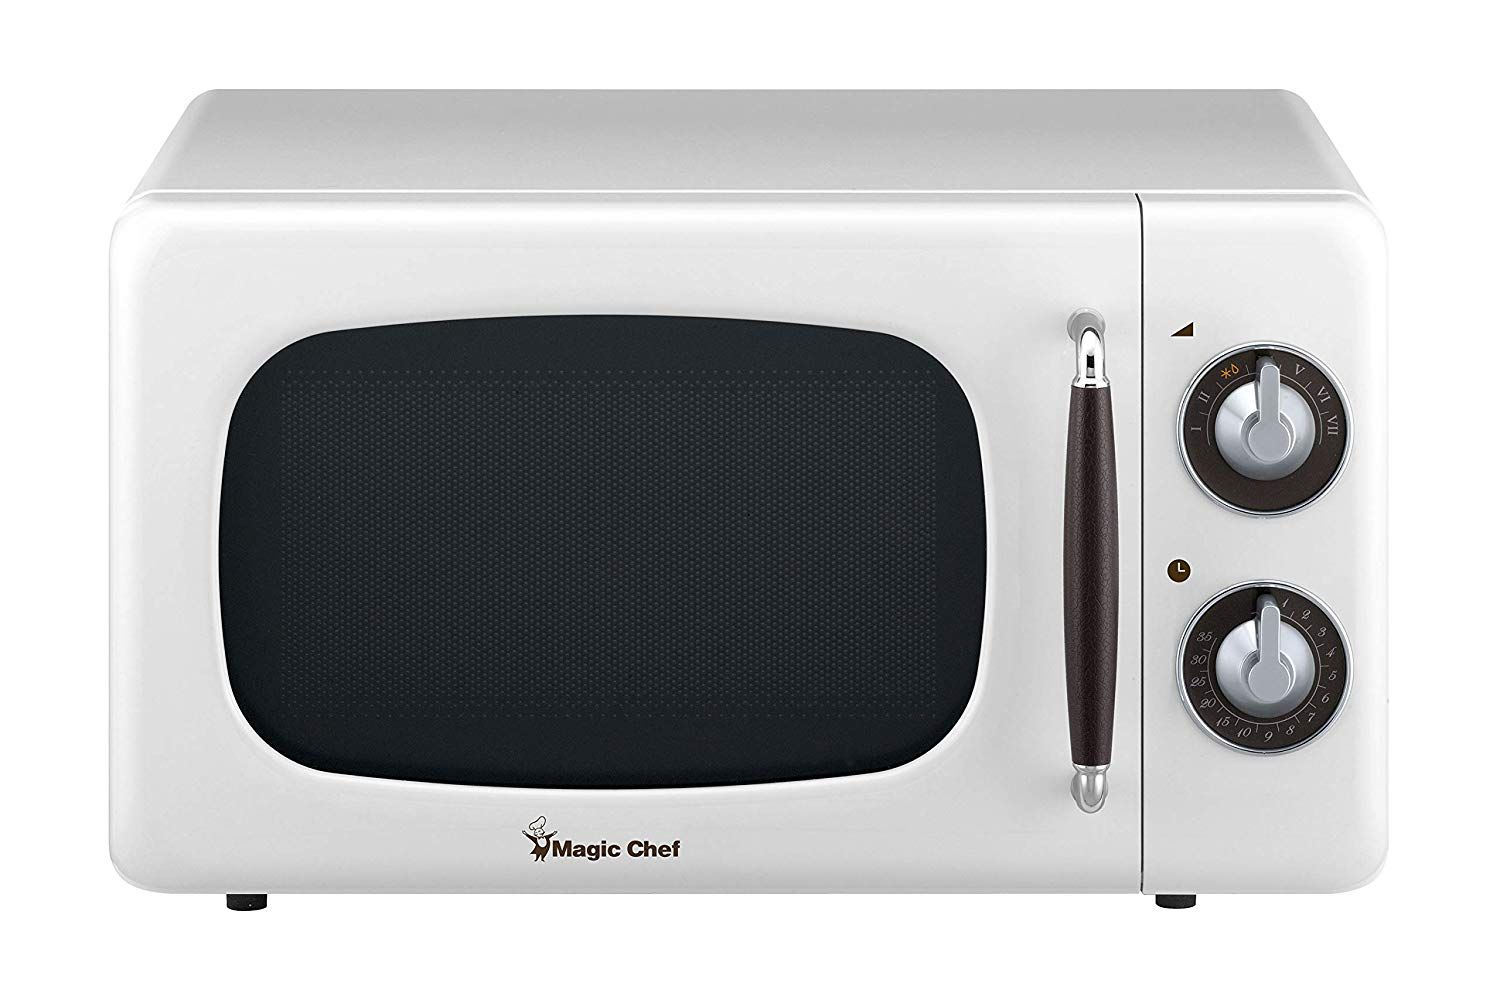 Microwave Oven Image By Alizx In 2020 Countertop Microwave Oven Magic Chef Countertop Microwave